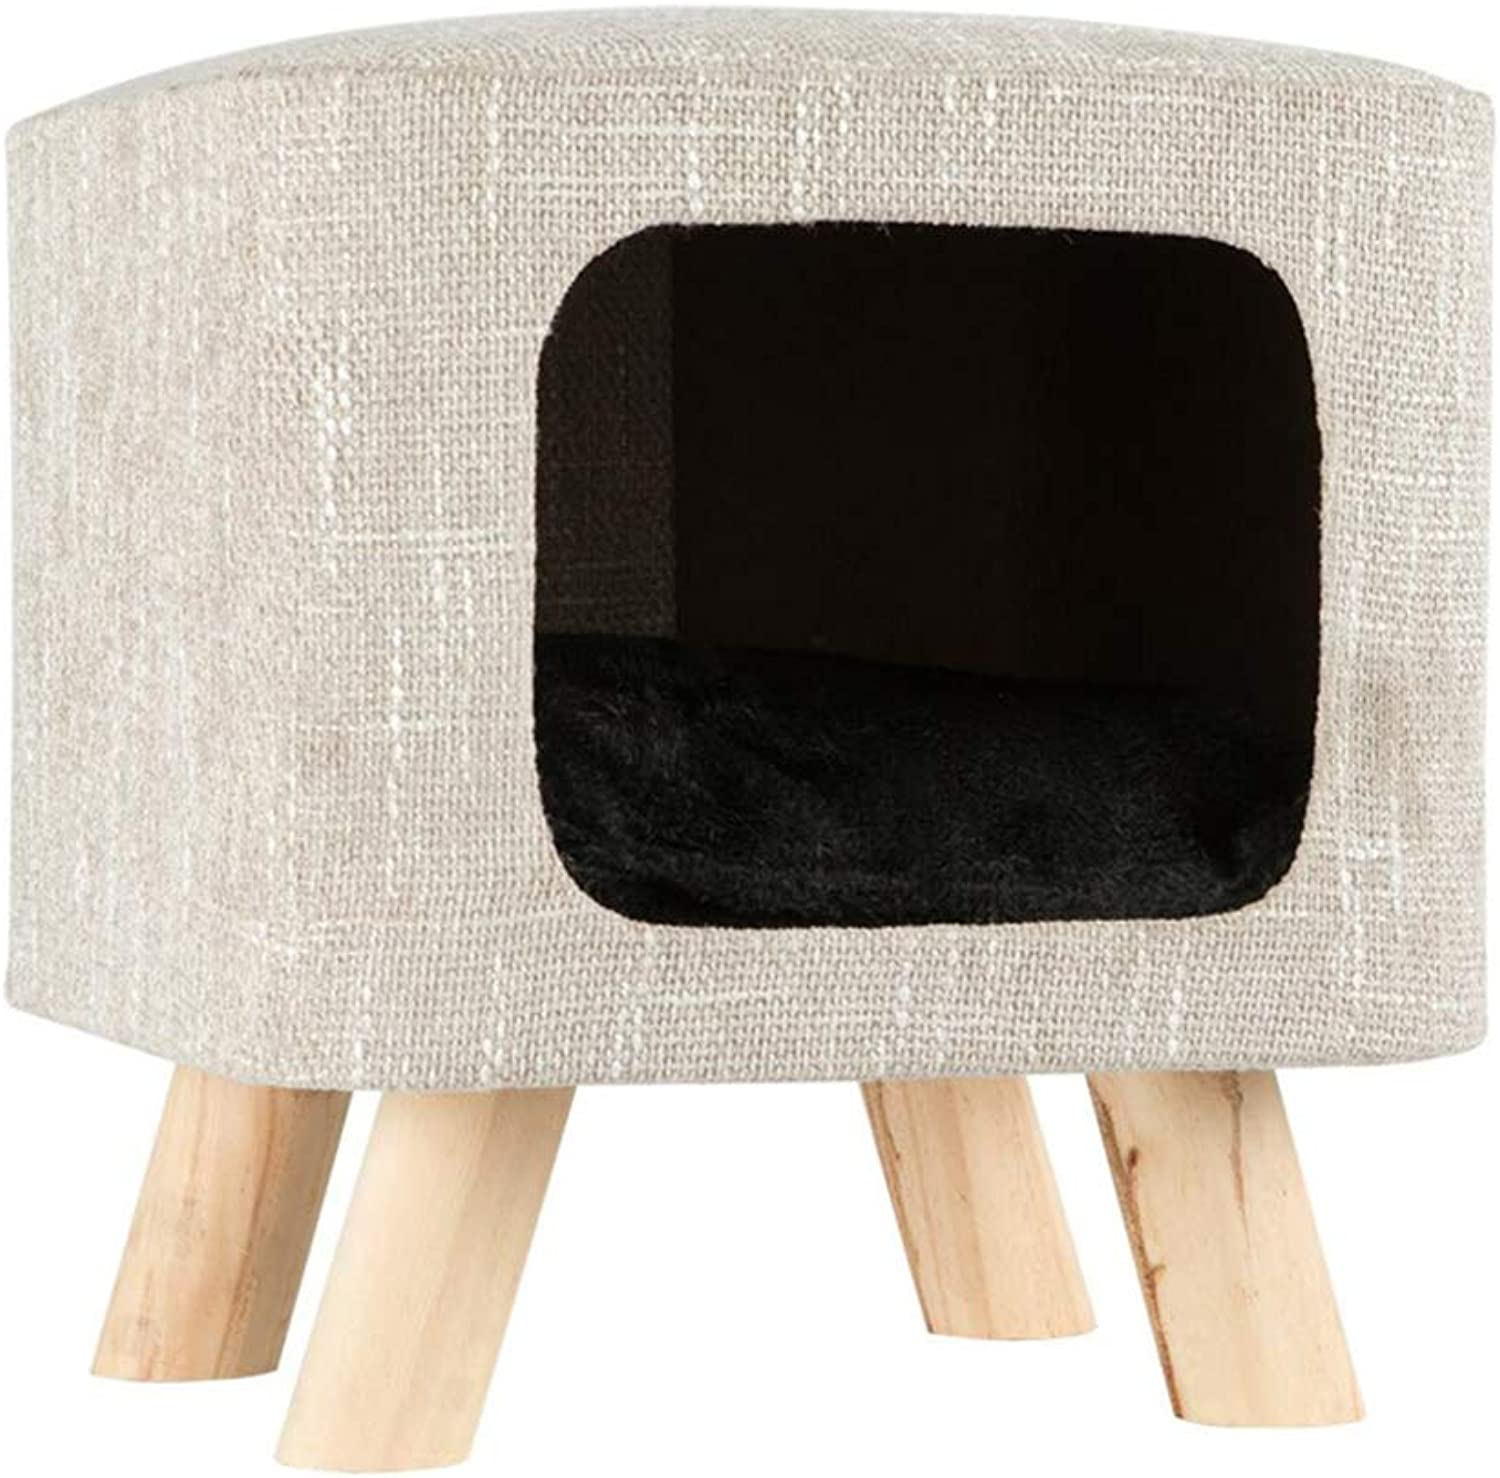 QUD Cat litter, cat house cat house cat house stool solid wood leg seat cat house kennel (color   Beige)